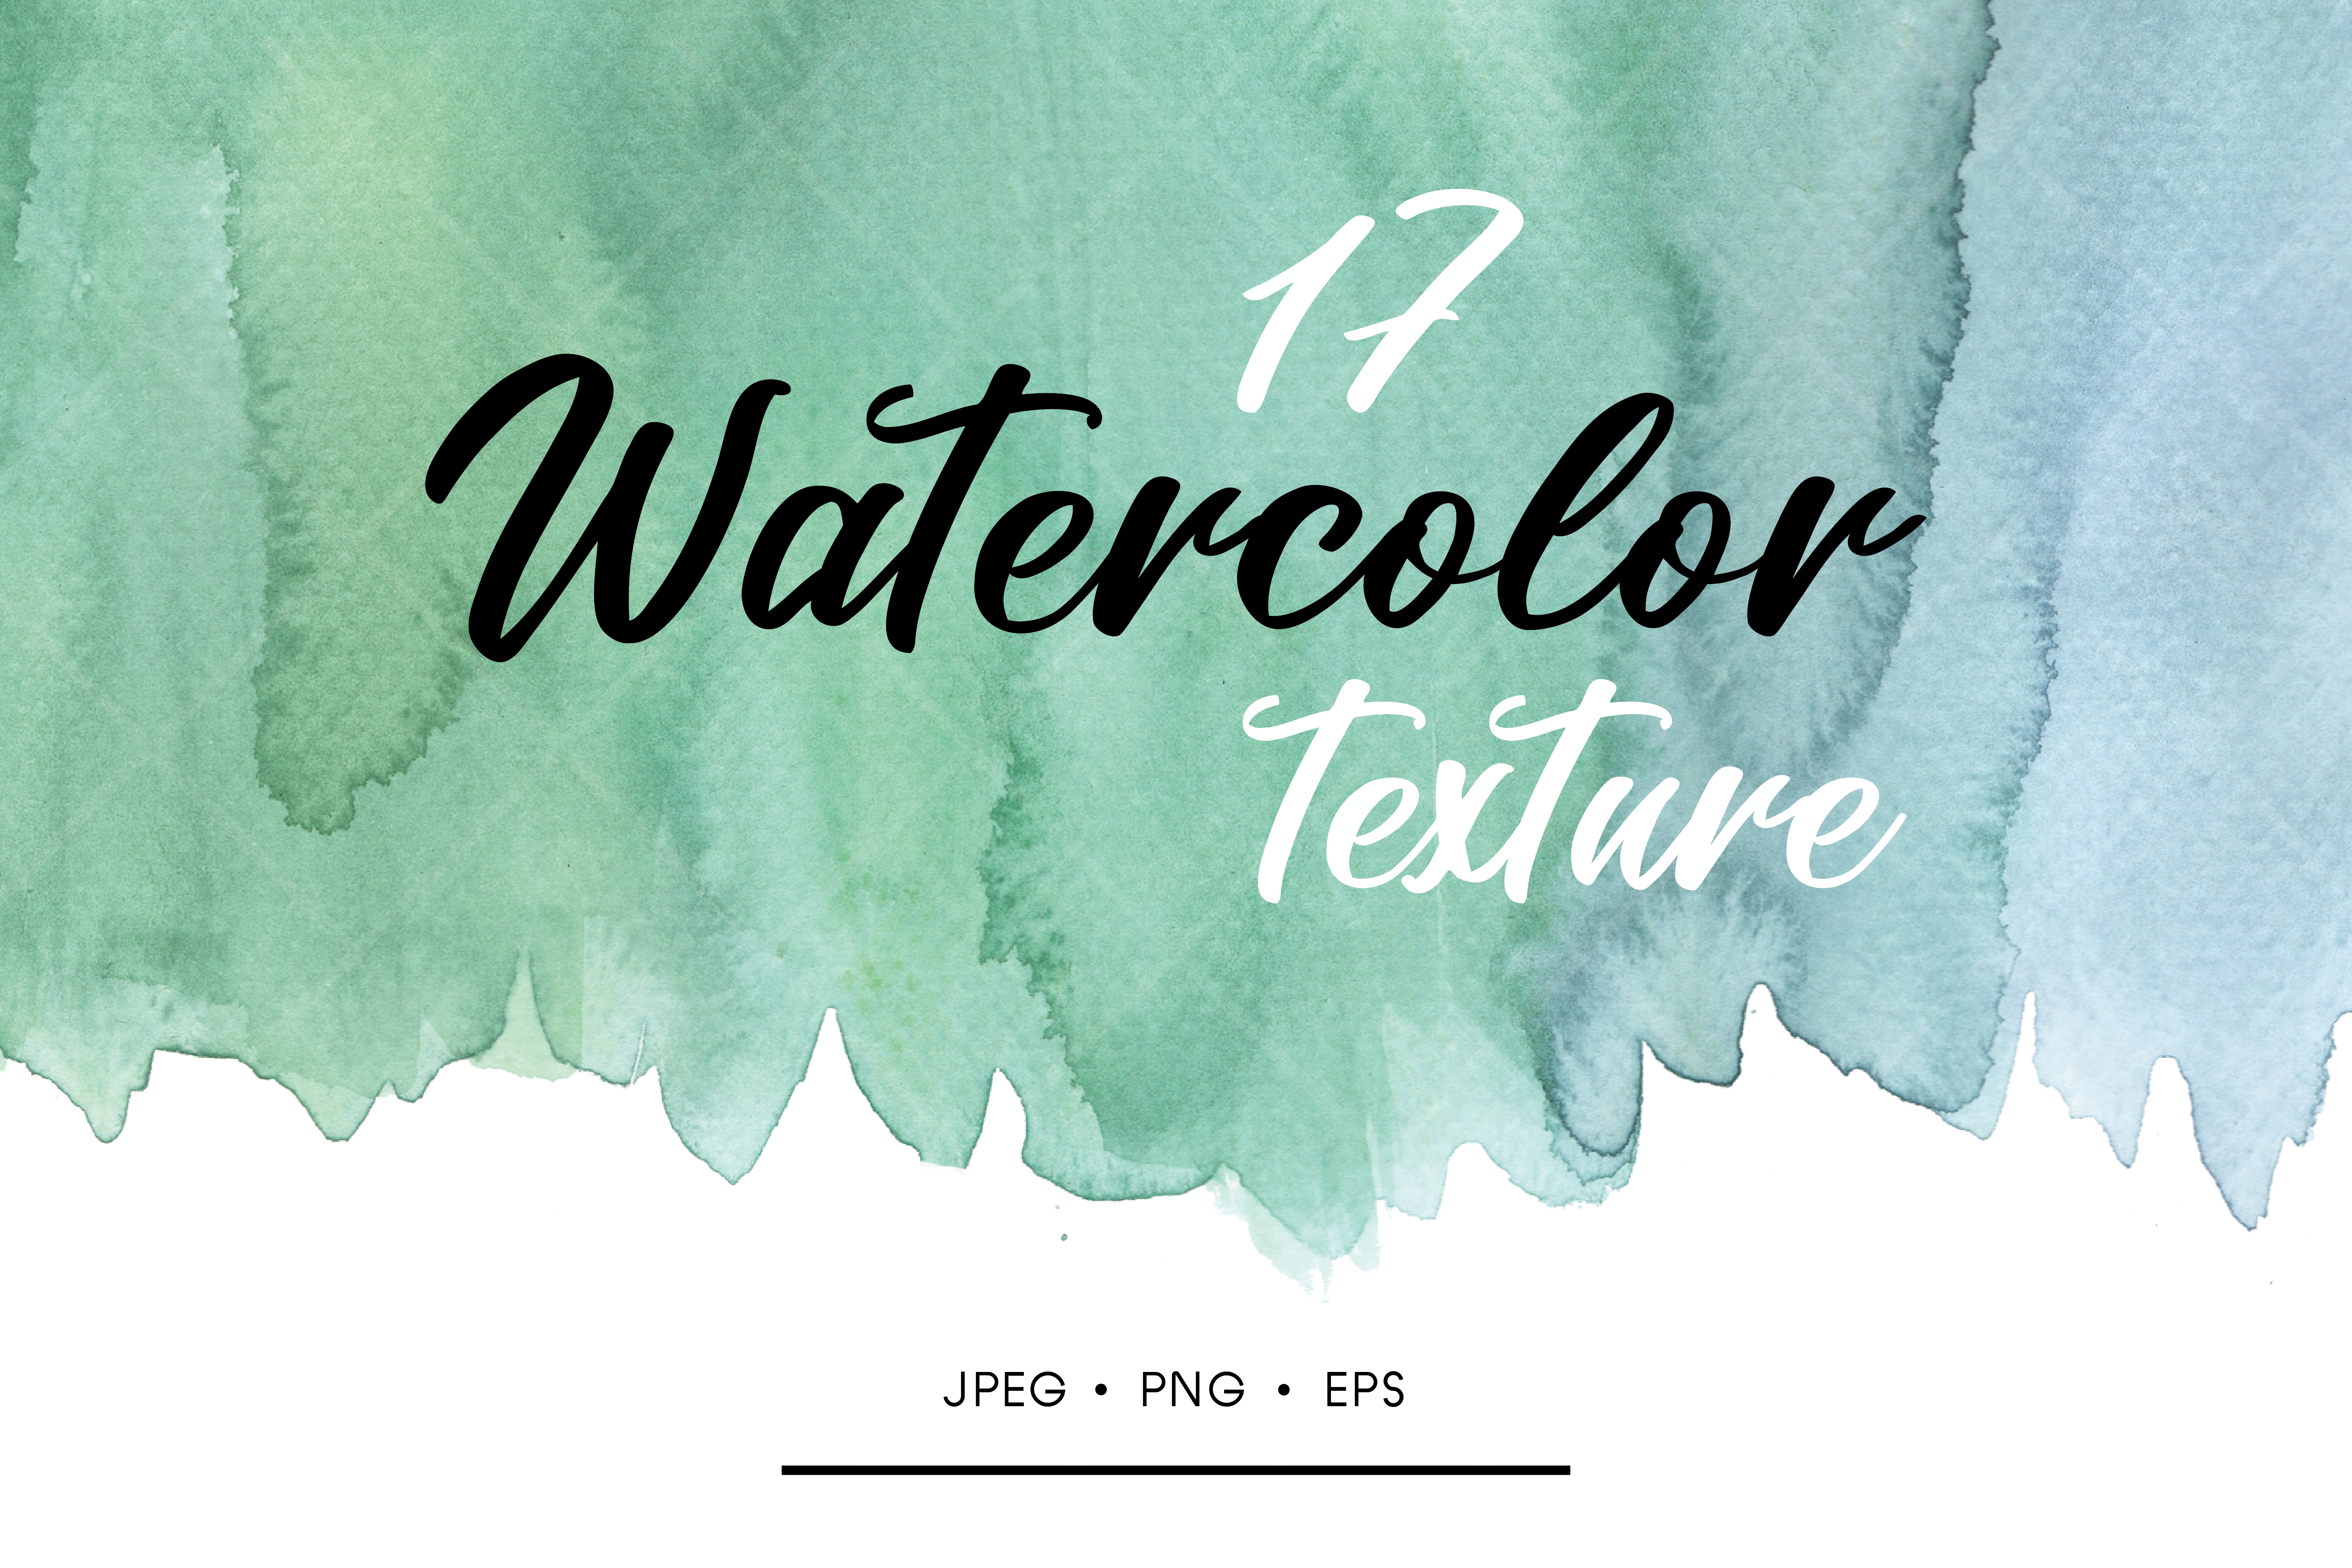 Watercolor texture example image 1